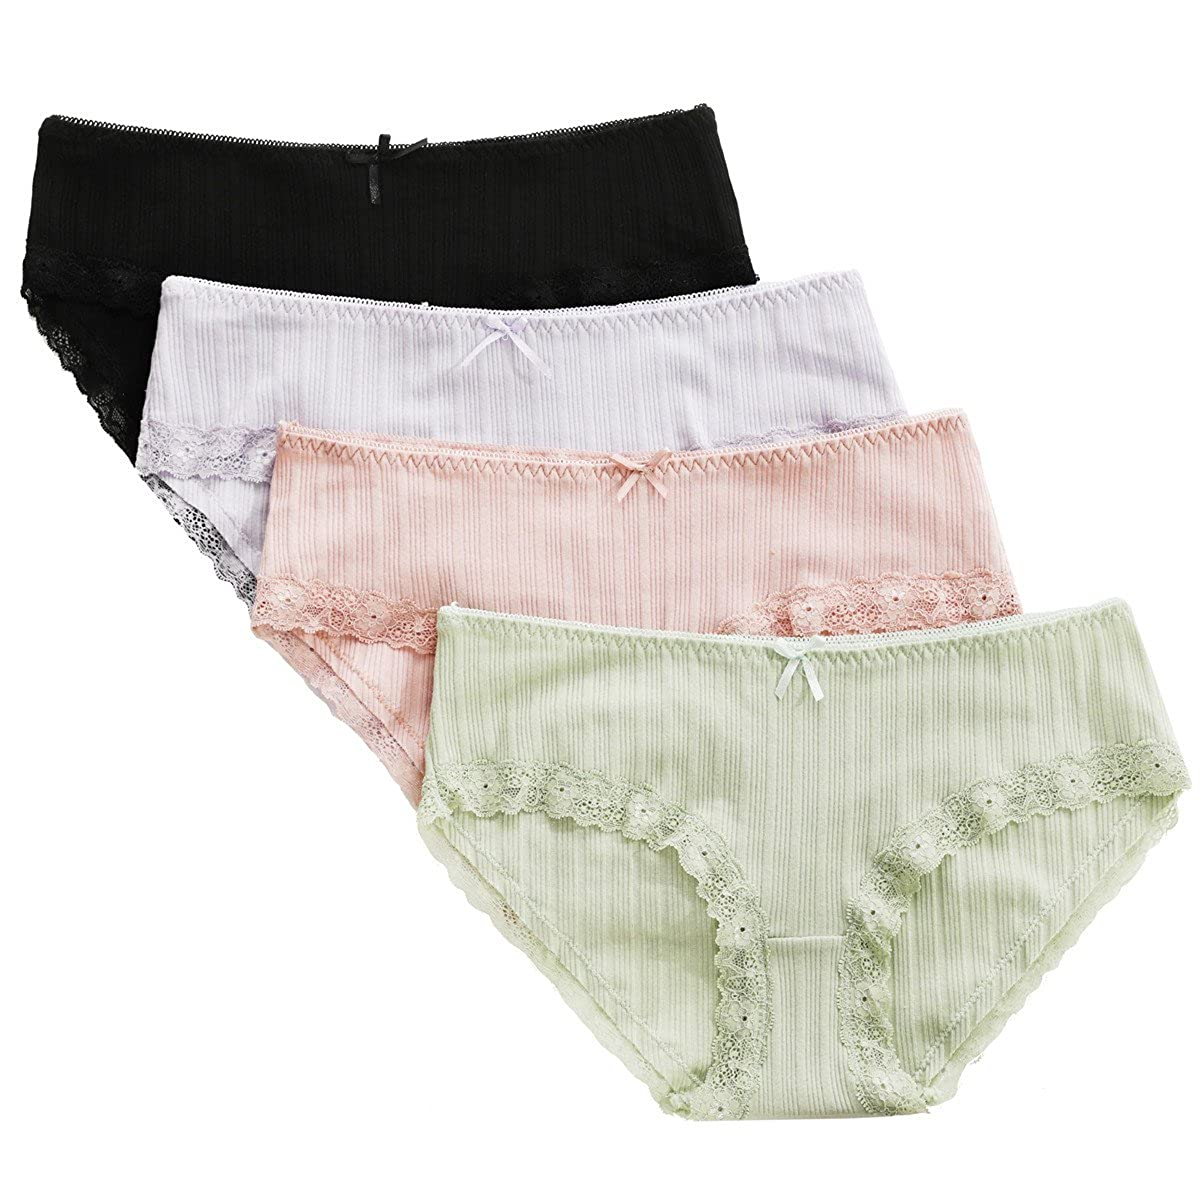 ATTRACO Women's Cotton Brief Panties Soft Underwear Lace Trim 4 Pack